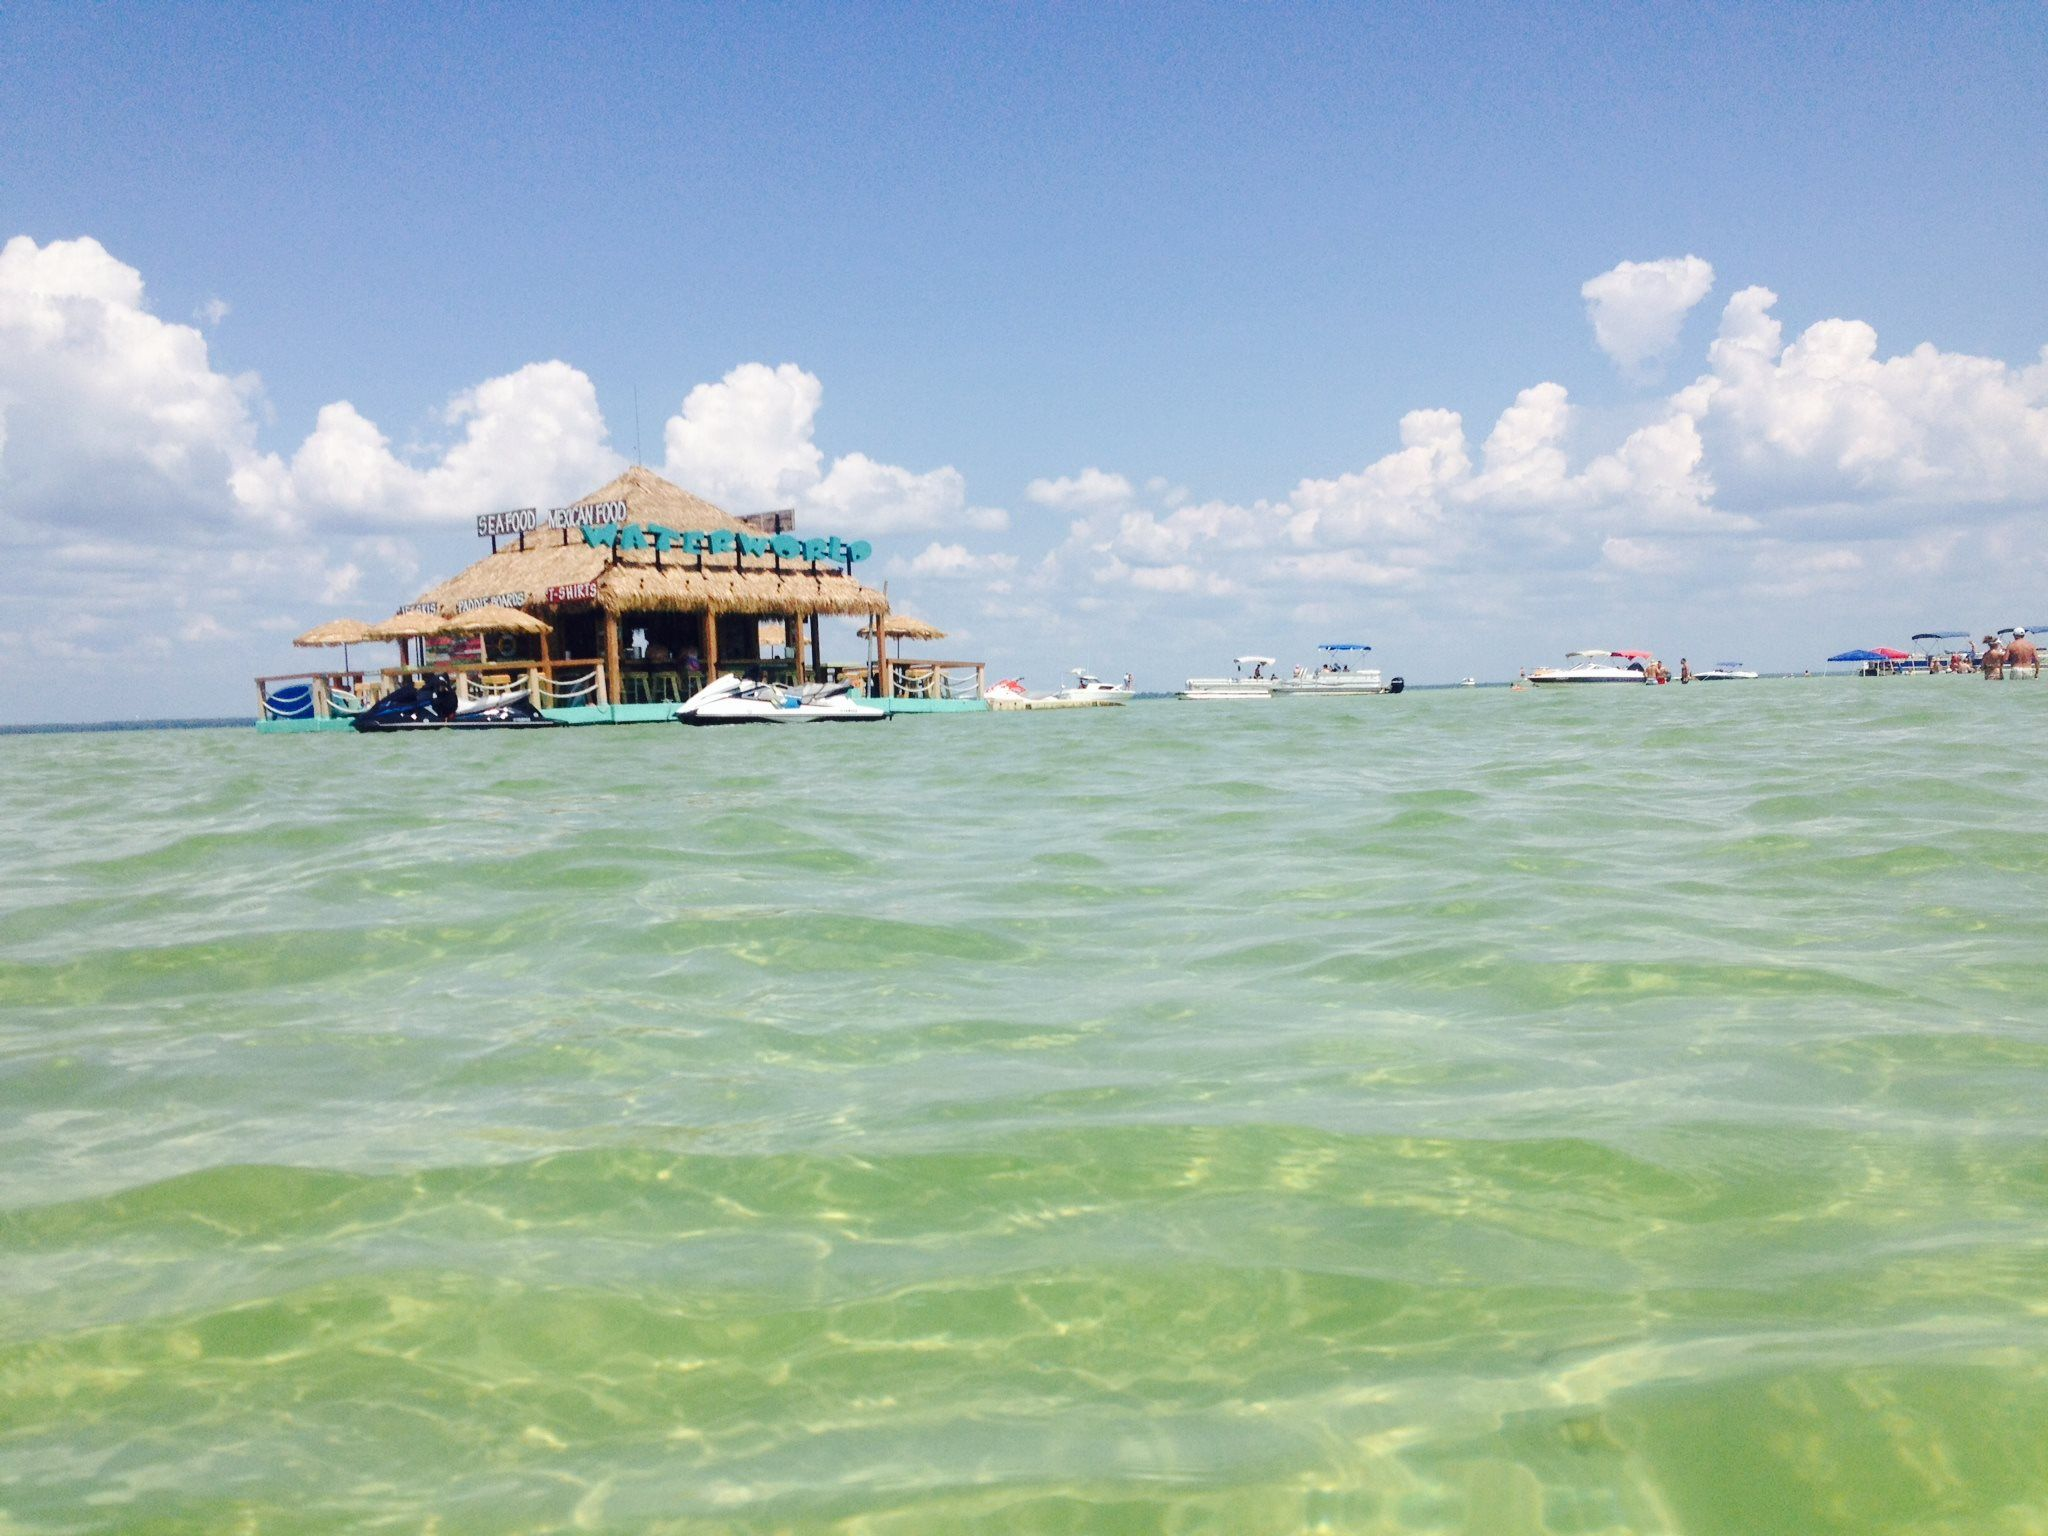 Crab Island fun things to do with kids in destin florida | Vacation ...